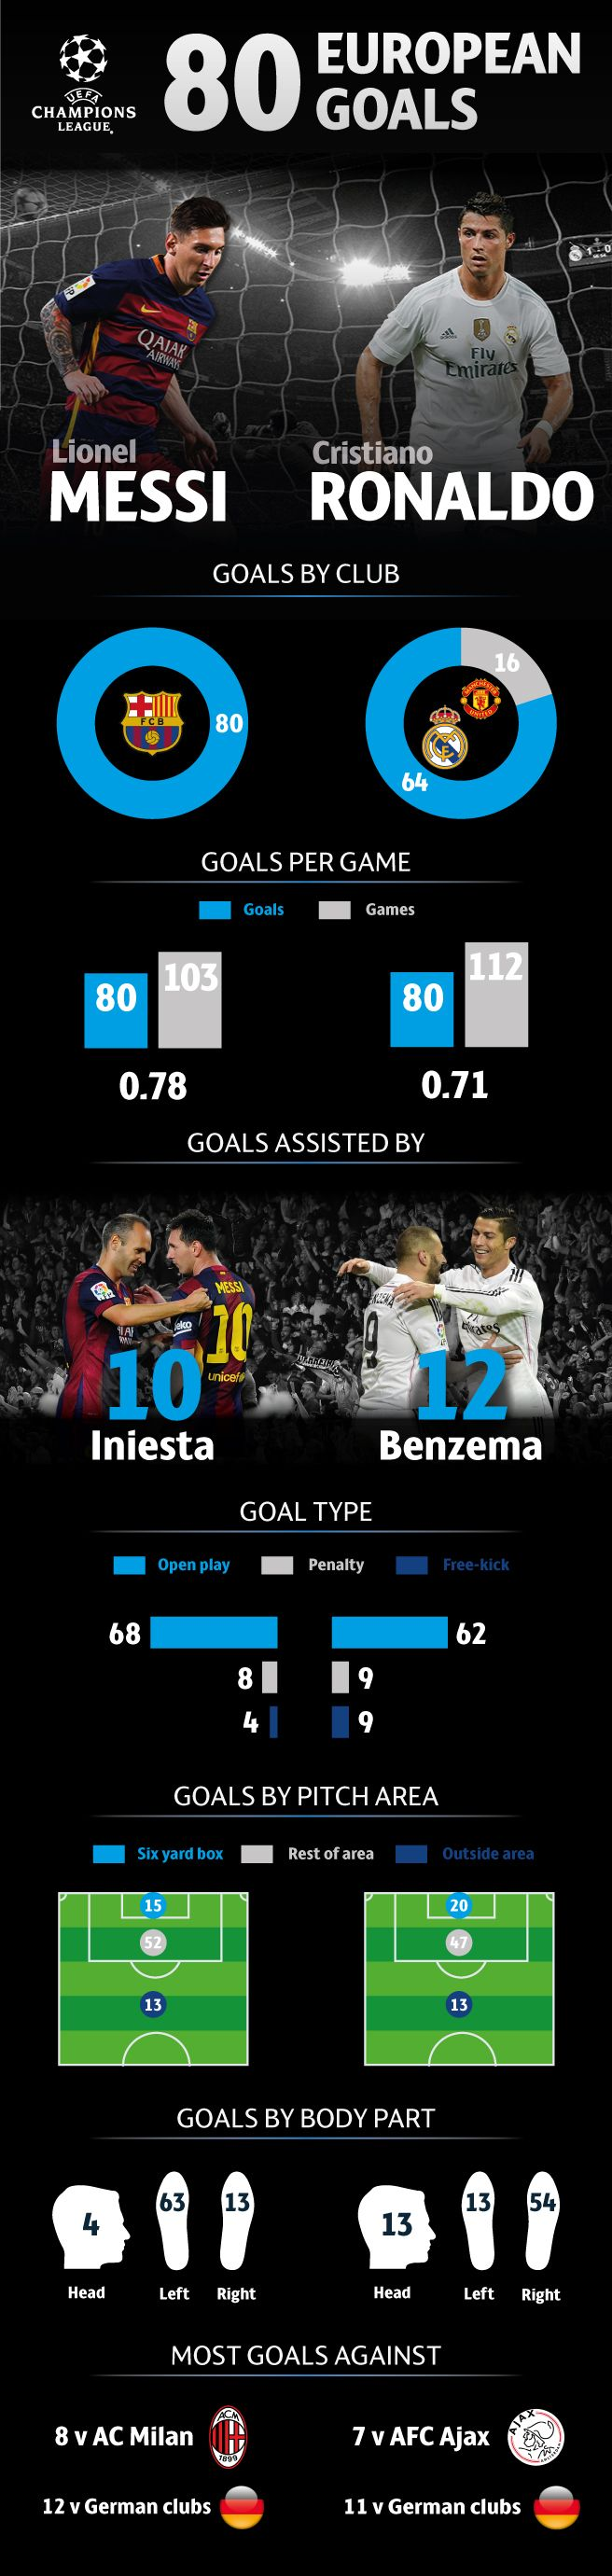 Lionel Messi and Cristiano Ronaldo have both scored 80 European goals – but from where? Left foot or right? Inside the area or out? Who against? UEFA.com breaks down the numbers.